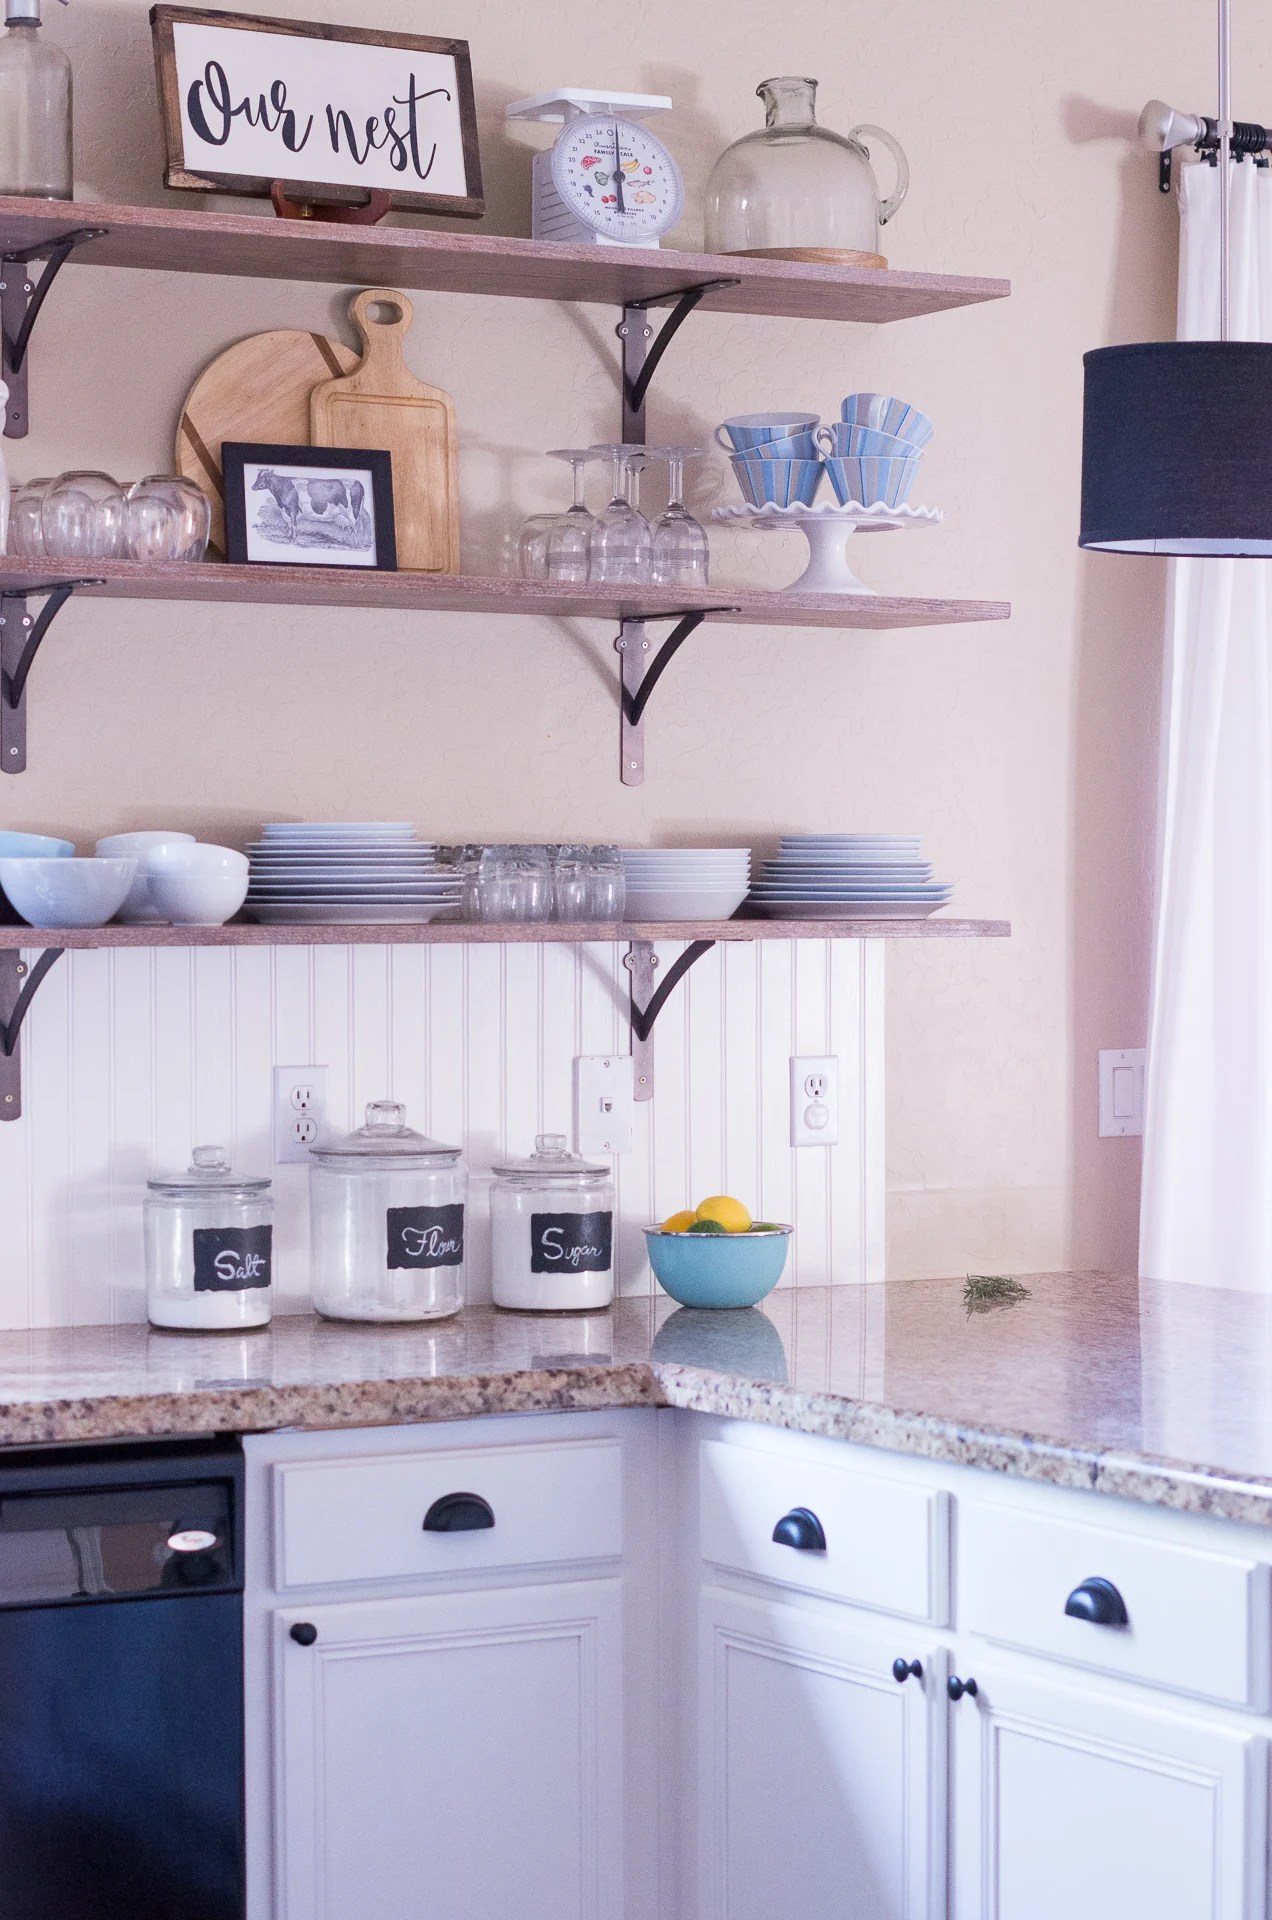 upper kitchen cabinets 3 basin sink 6 creative storage solutions for a with no replacing open shelves is an easy and trending alternative provide ready access to items